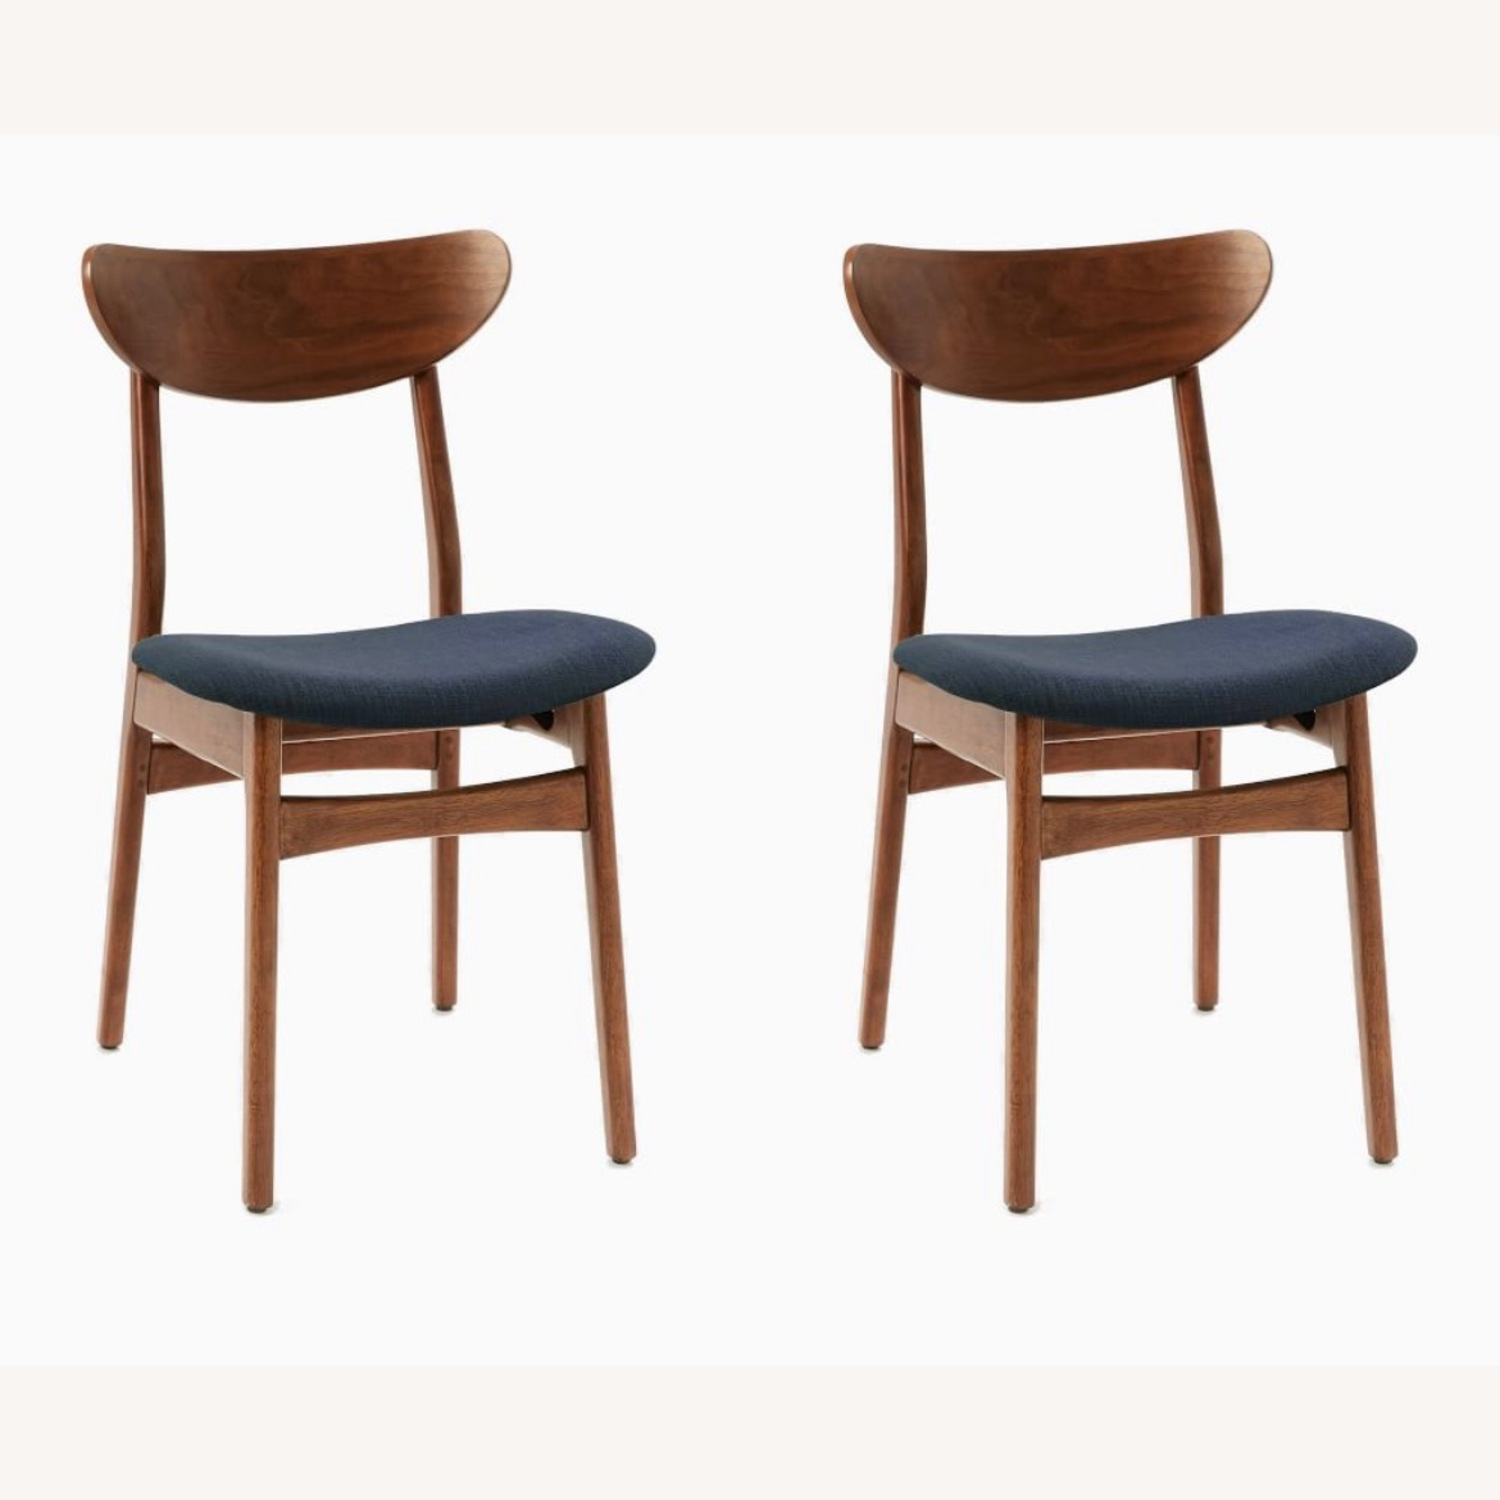 West Elm Classic Cafe Chairs Set of 2 - image-1